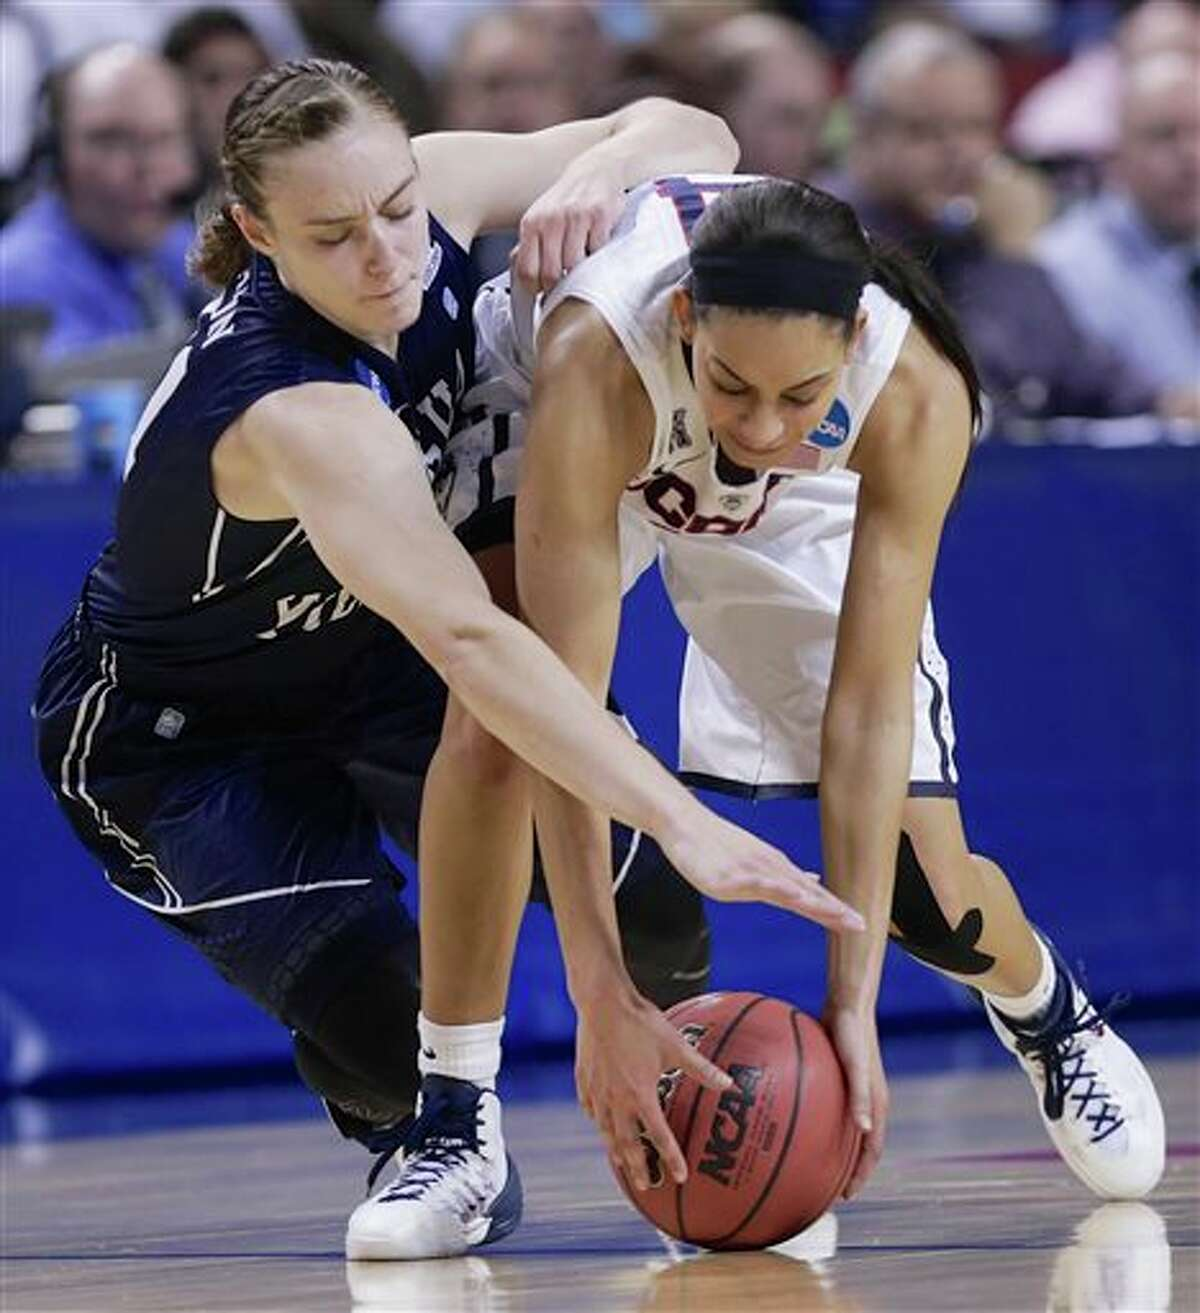 BYU's Lexi Eaton, left, and Connecticut's Bria Hartley (14) scramble for the ball during the first half of a regional semifinal in the NCAA college basketball tournament in Lincoln, Neb., Saturday, March 29, 2014. (AP Photo/Nati Harnik)